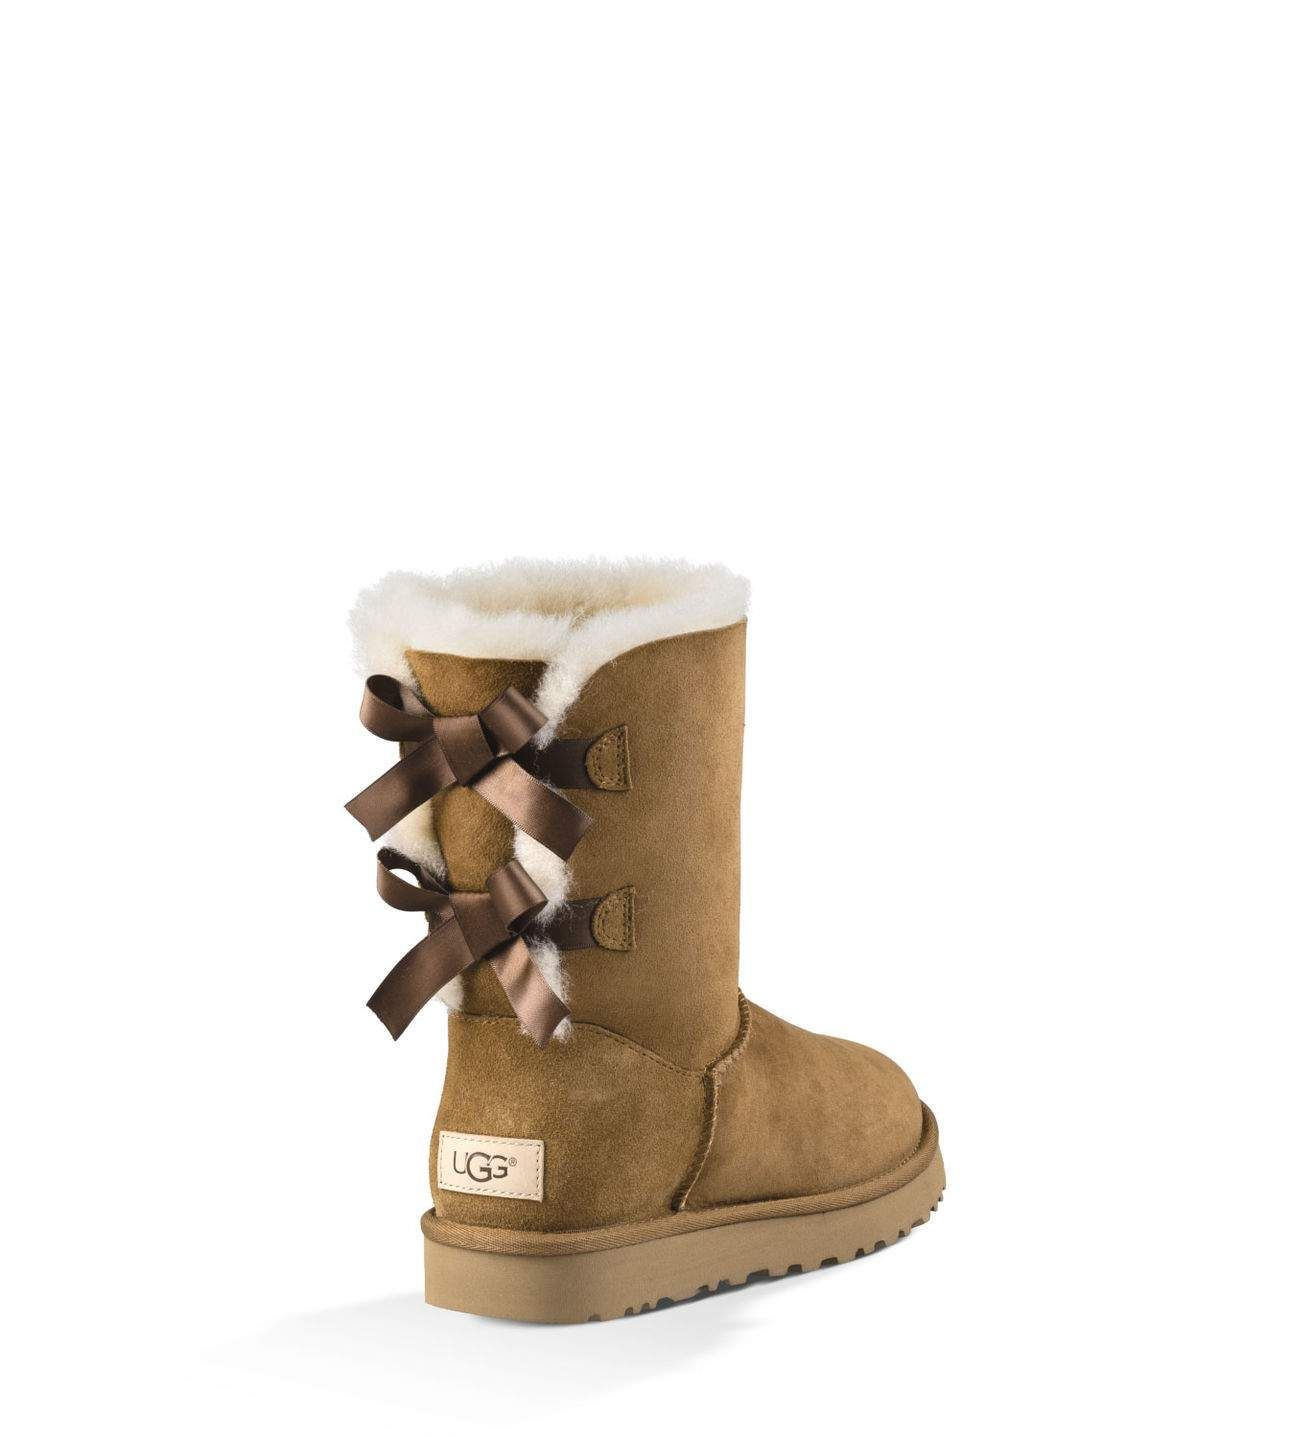 45854a363b Women's Share this product Bailey Bow II Boot | Shoes | Boots, Ugg ...